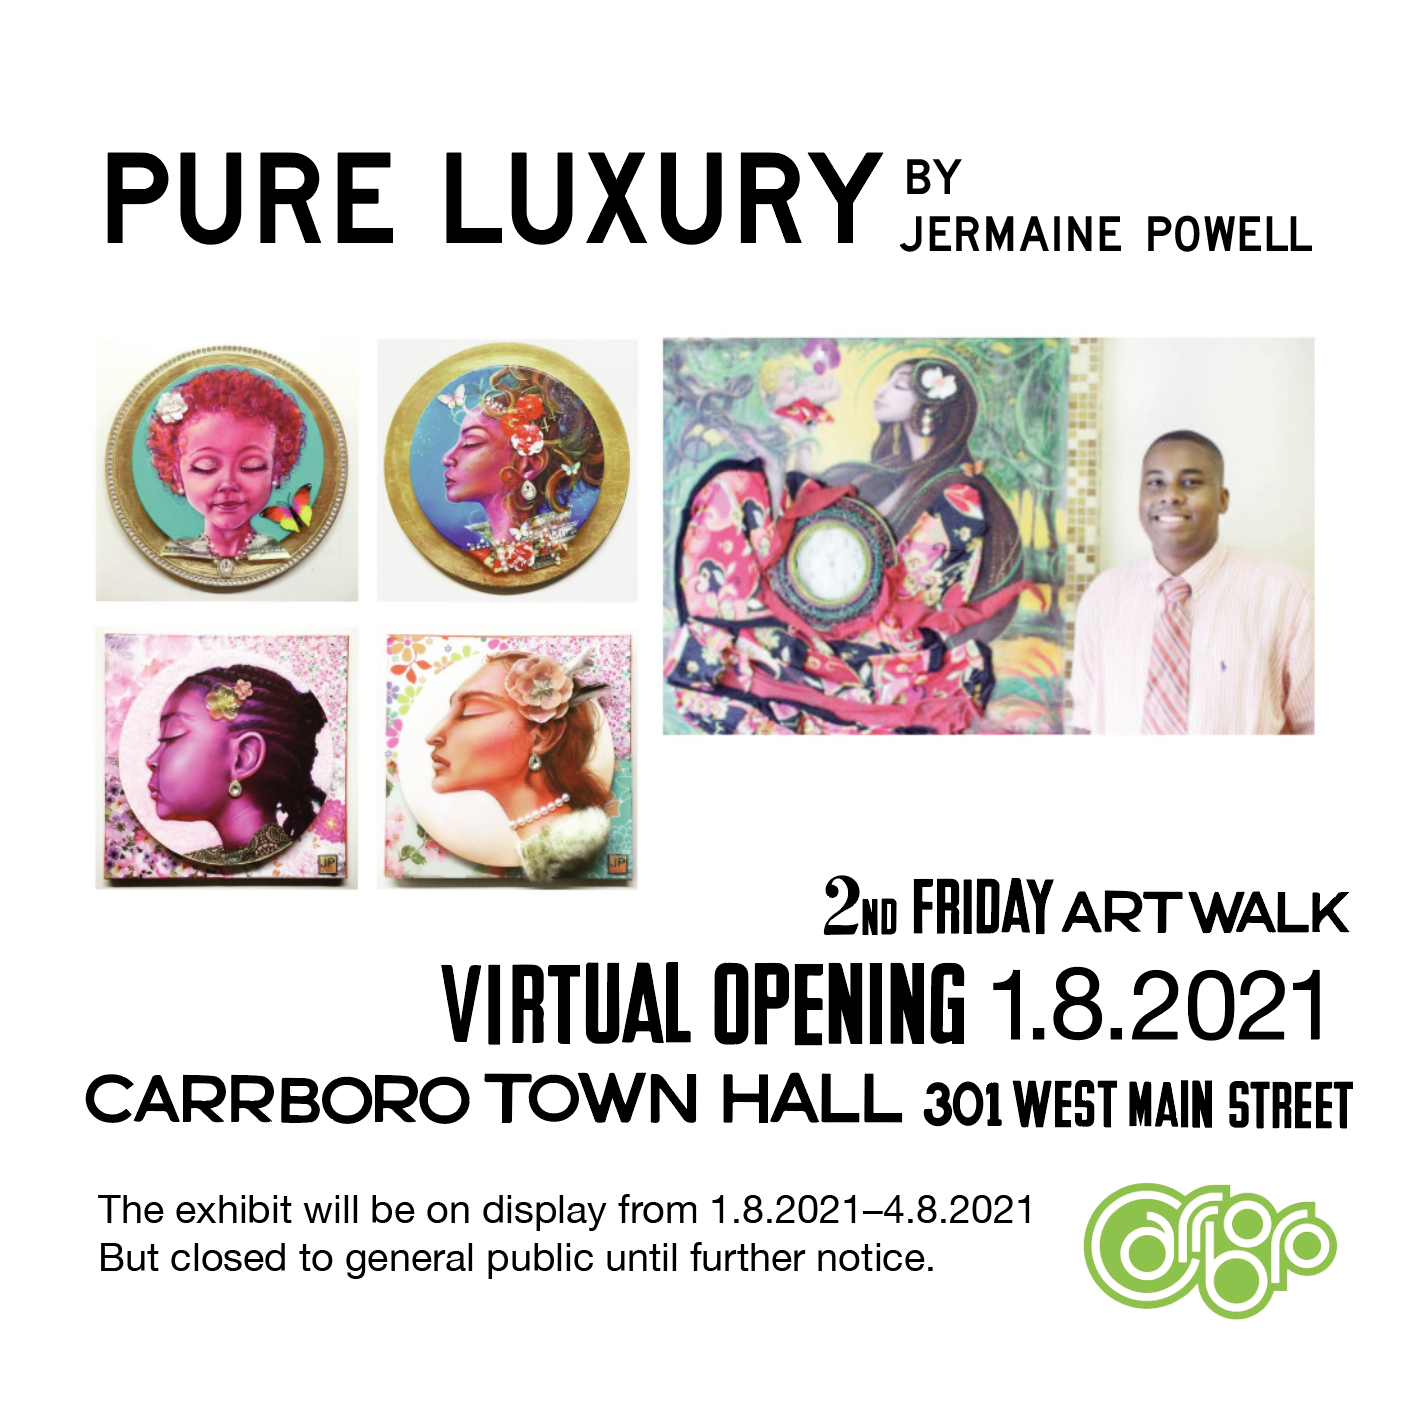 Jermaine Powell Art Exhibition Introduction Image